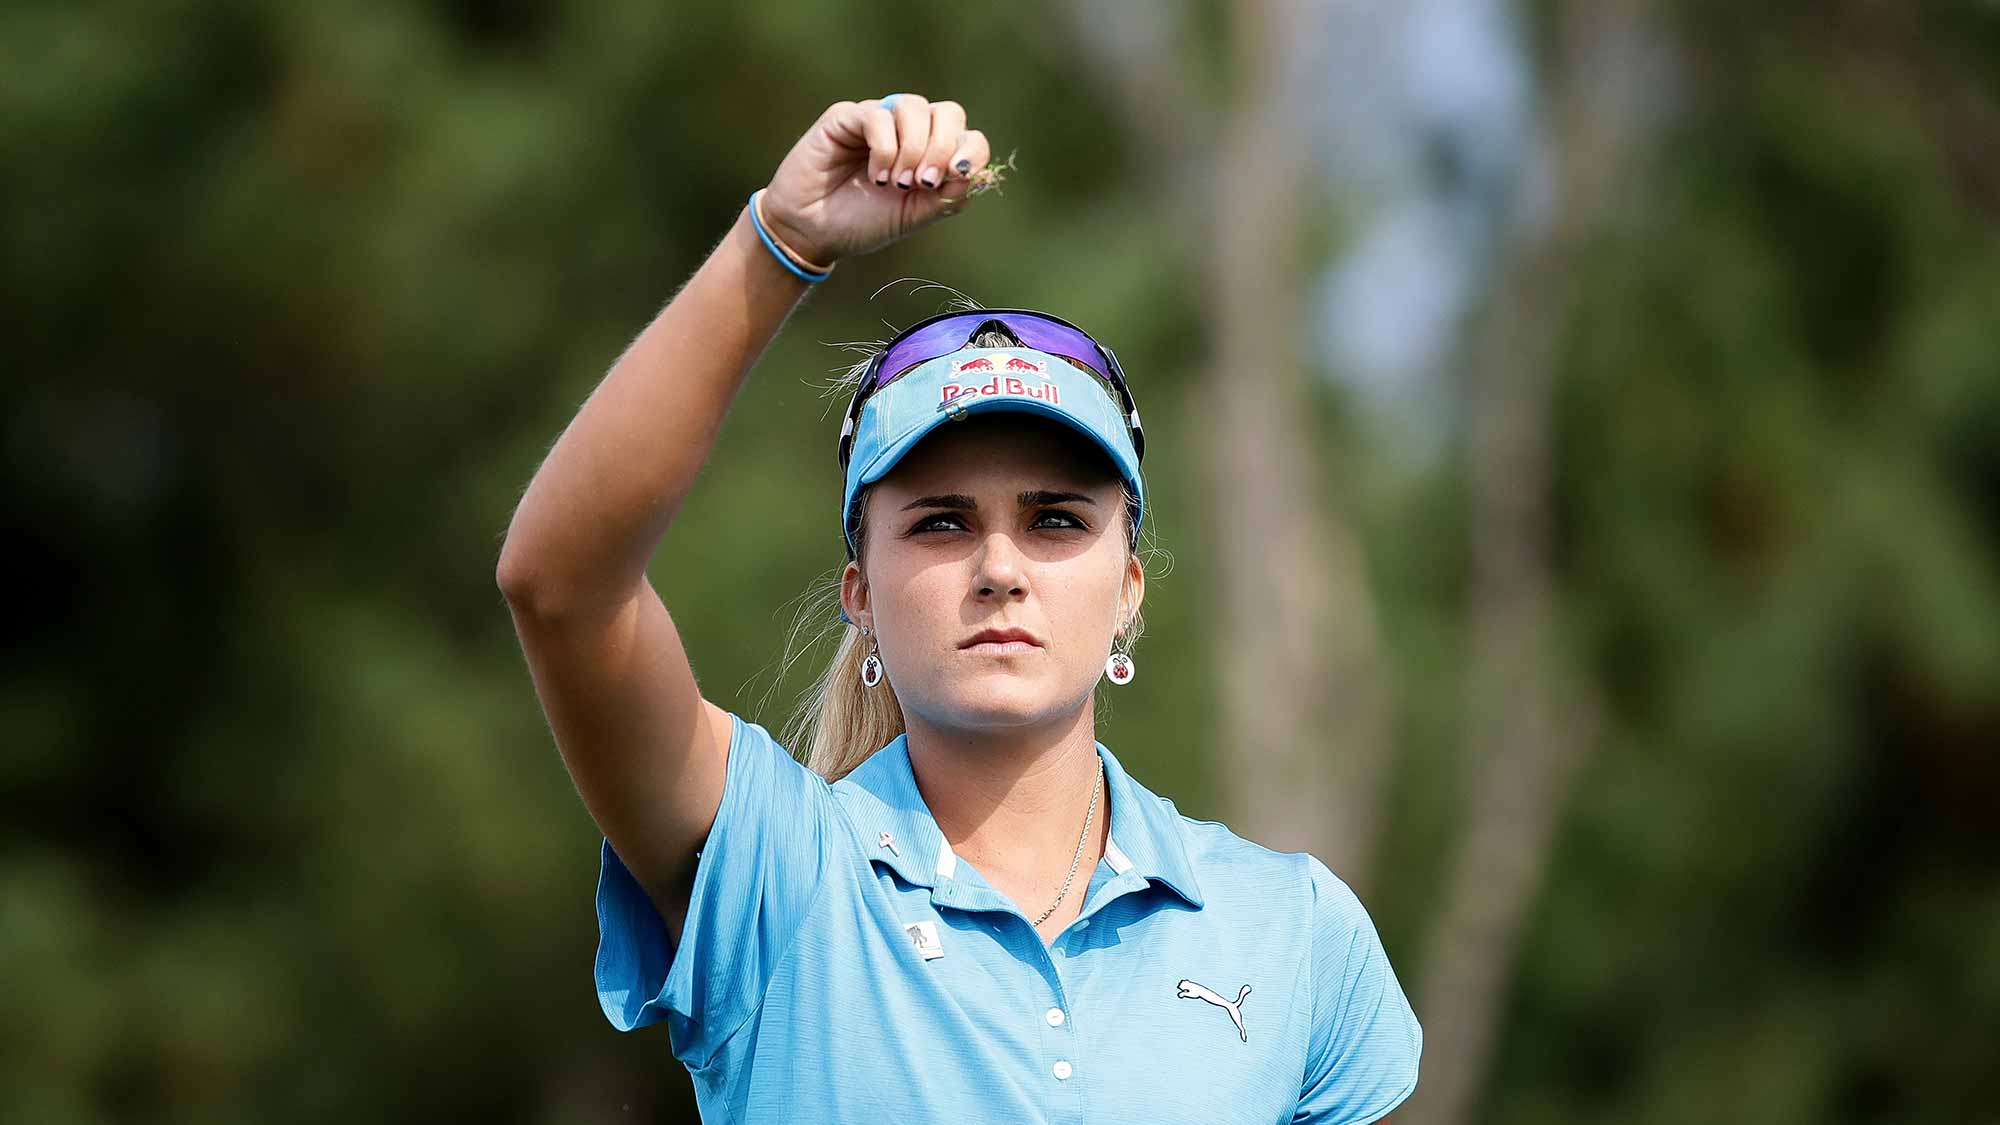 Lexi Thompson of United States on the 3rd hole during the first round of the LPGA KEB-Hana Bank Championship at the Sky 72 Golf Club Ocean Course